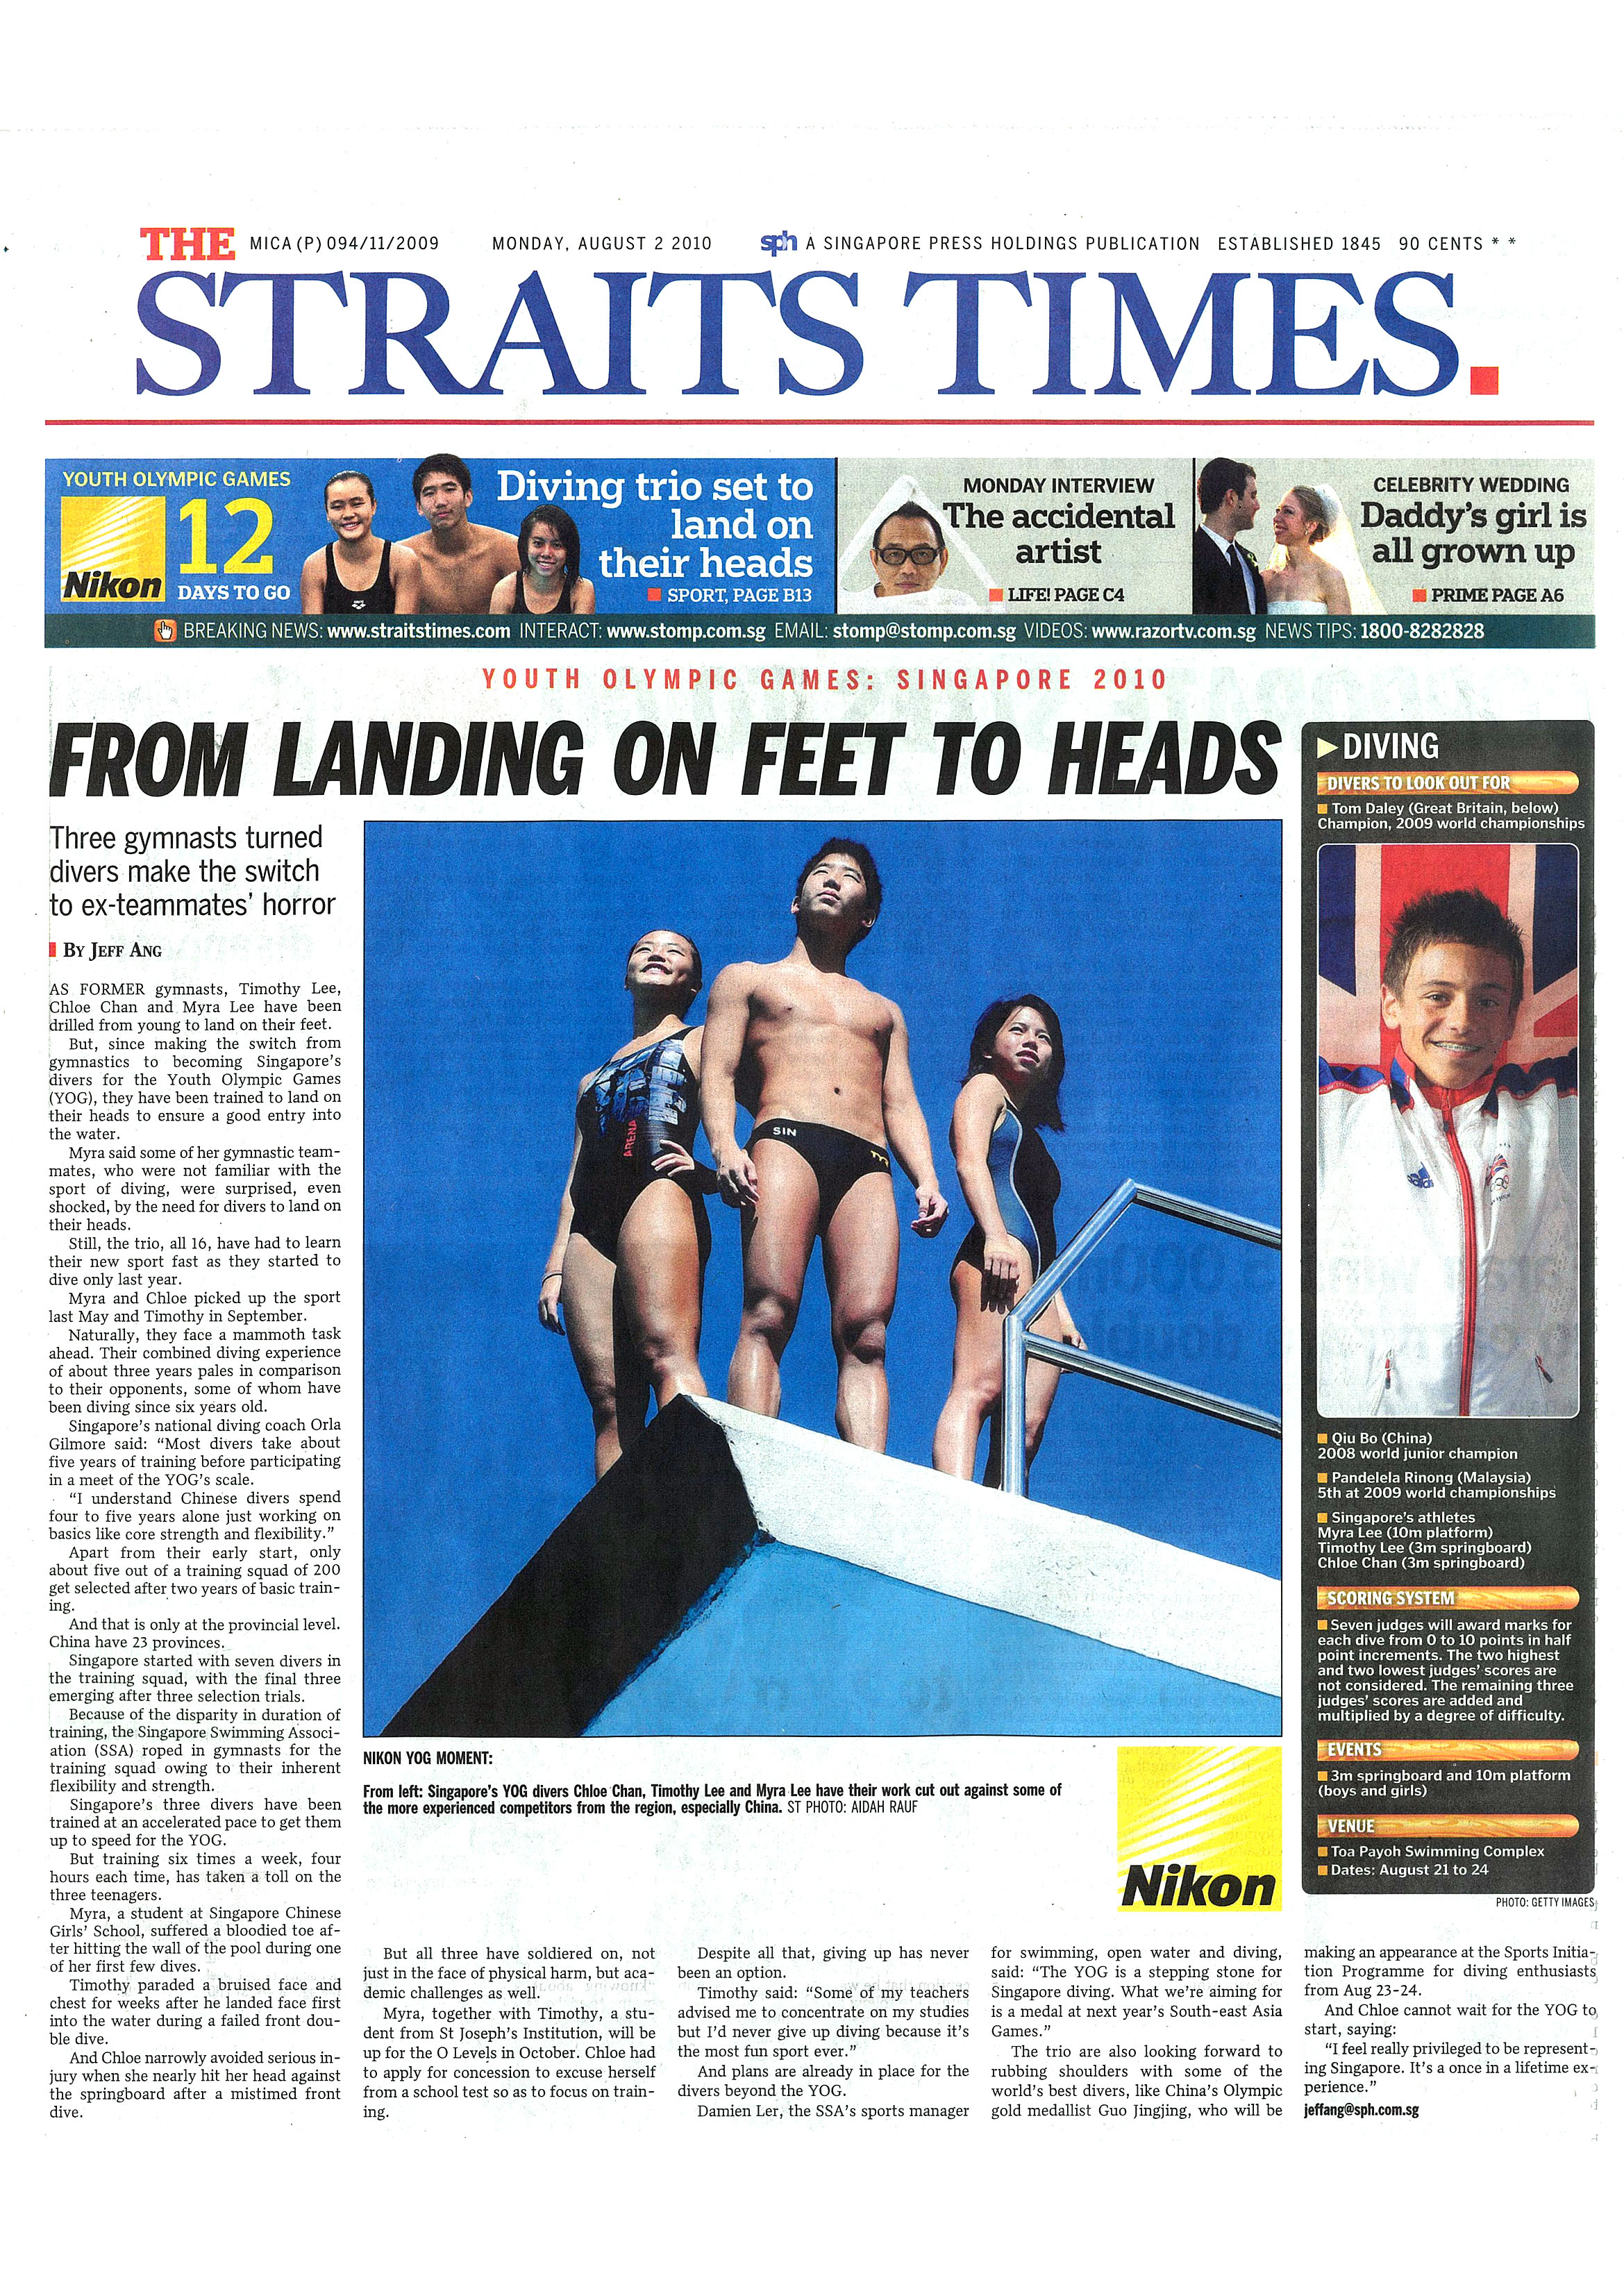 STRAITS TIMES - 2 August 2010